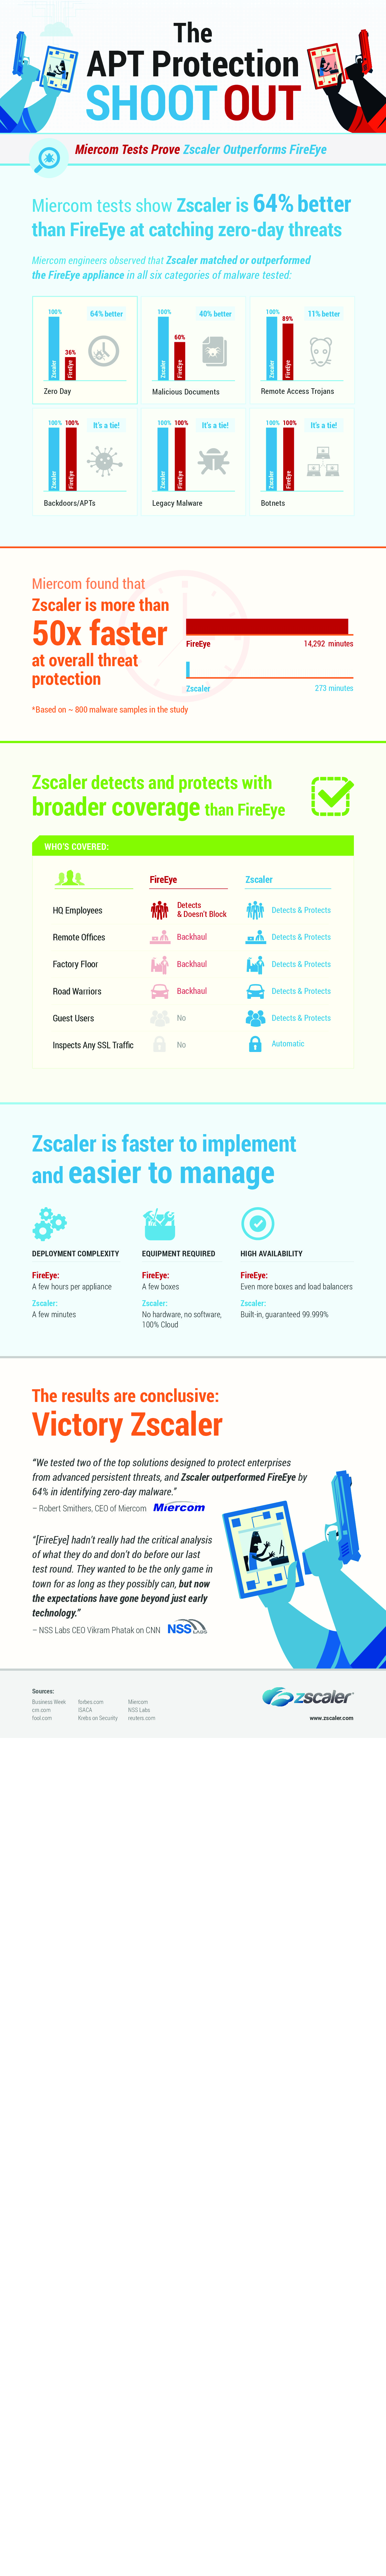 Zscaler vs Fireye: The APT Protection Shootout | Visual ly